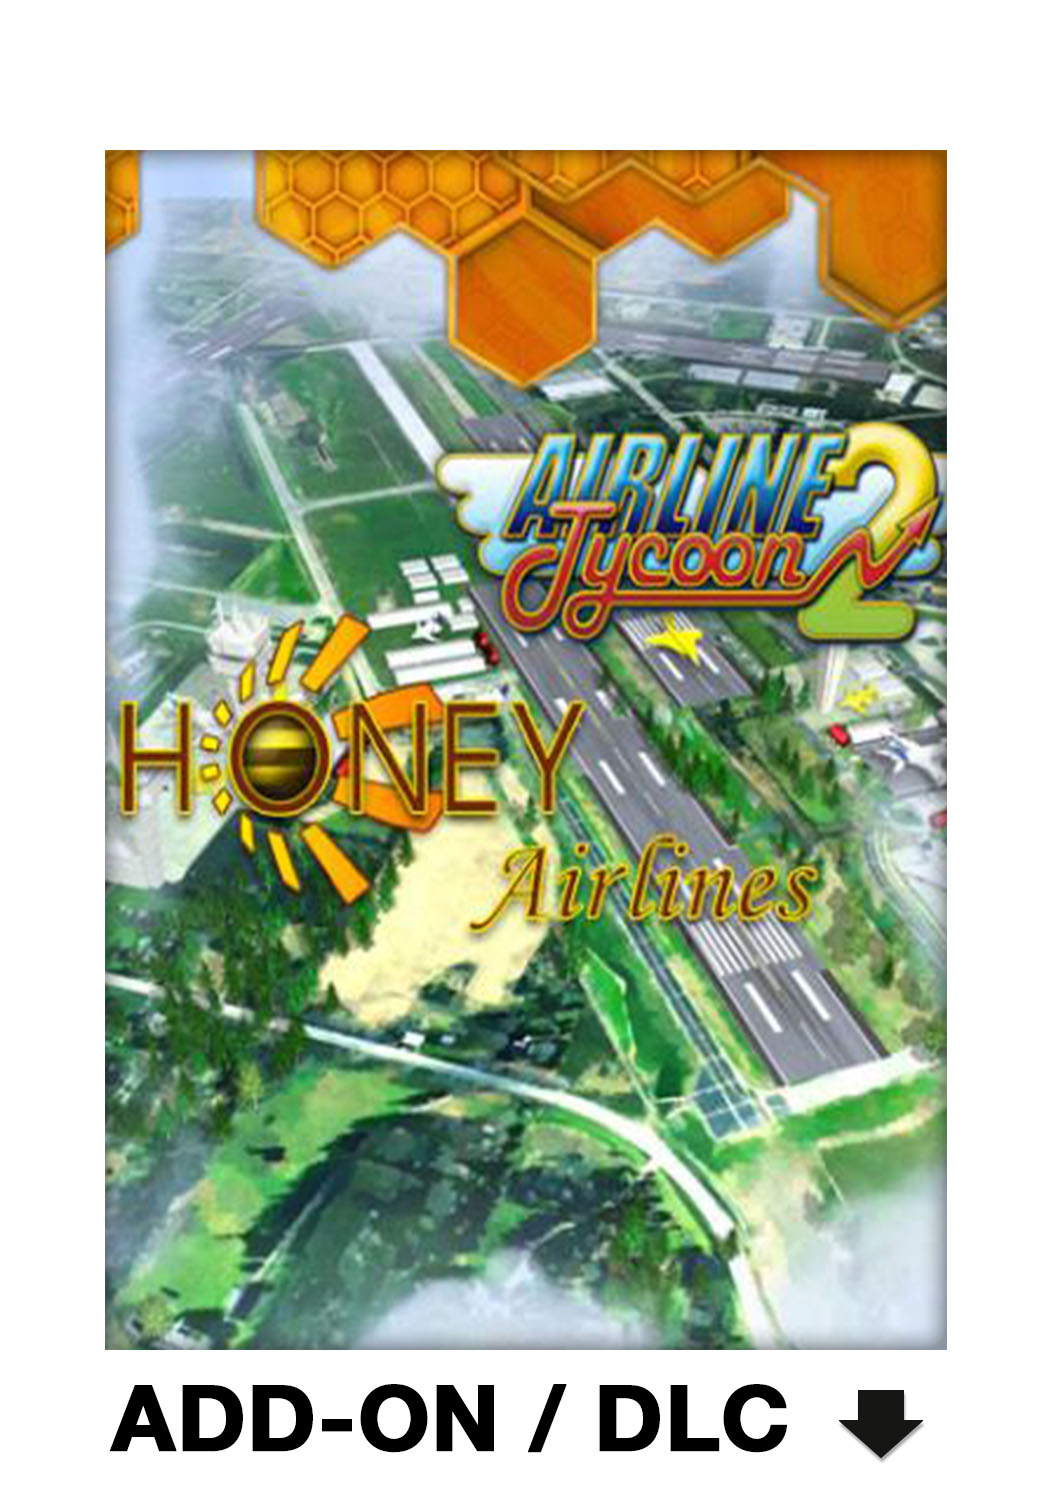 Official Airline Tycoon 2: Honey Airlines DLC (PC)